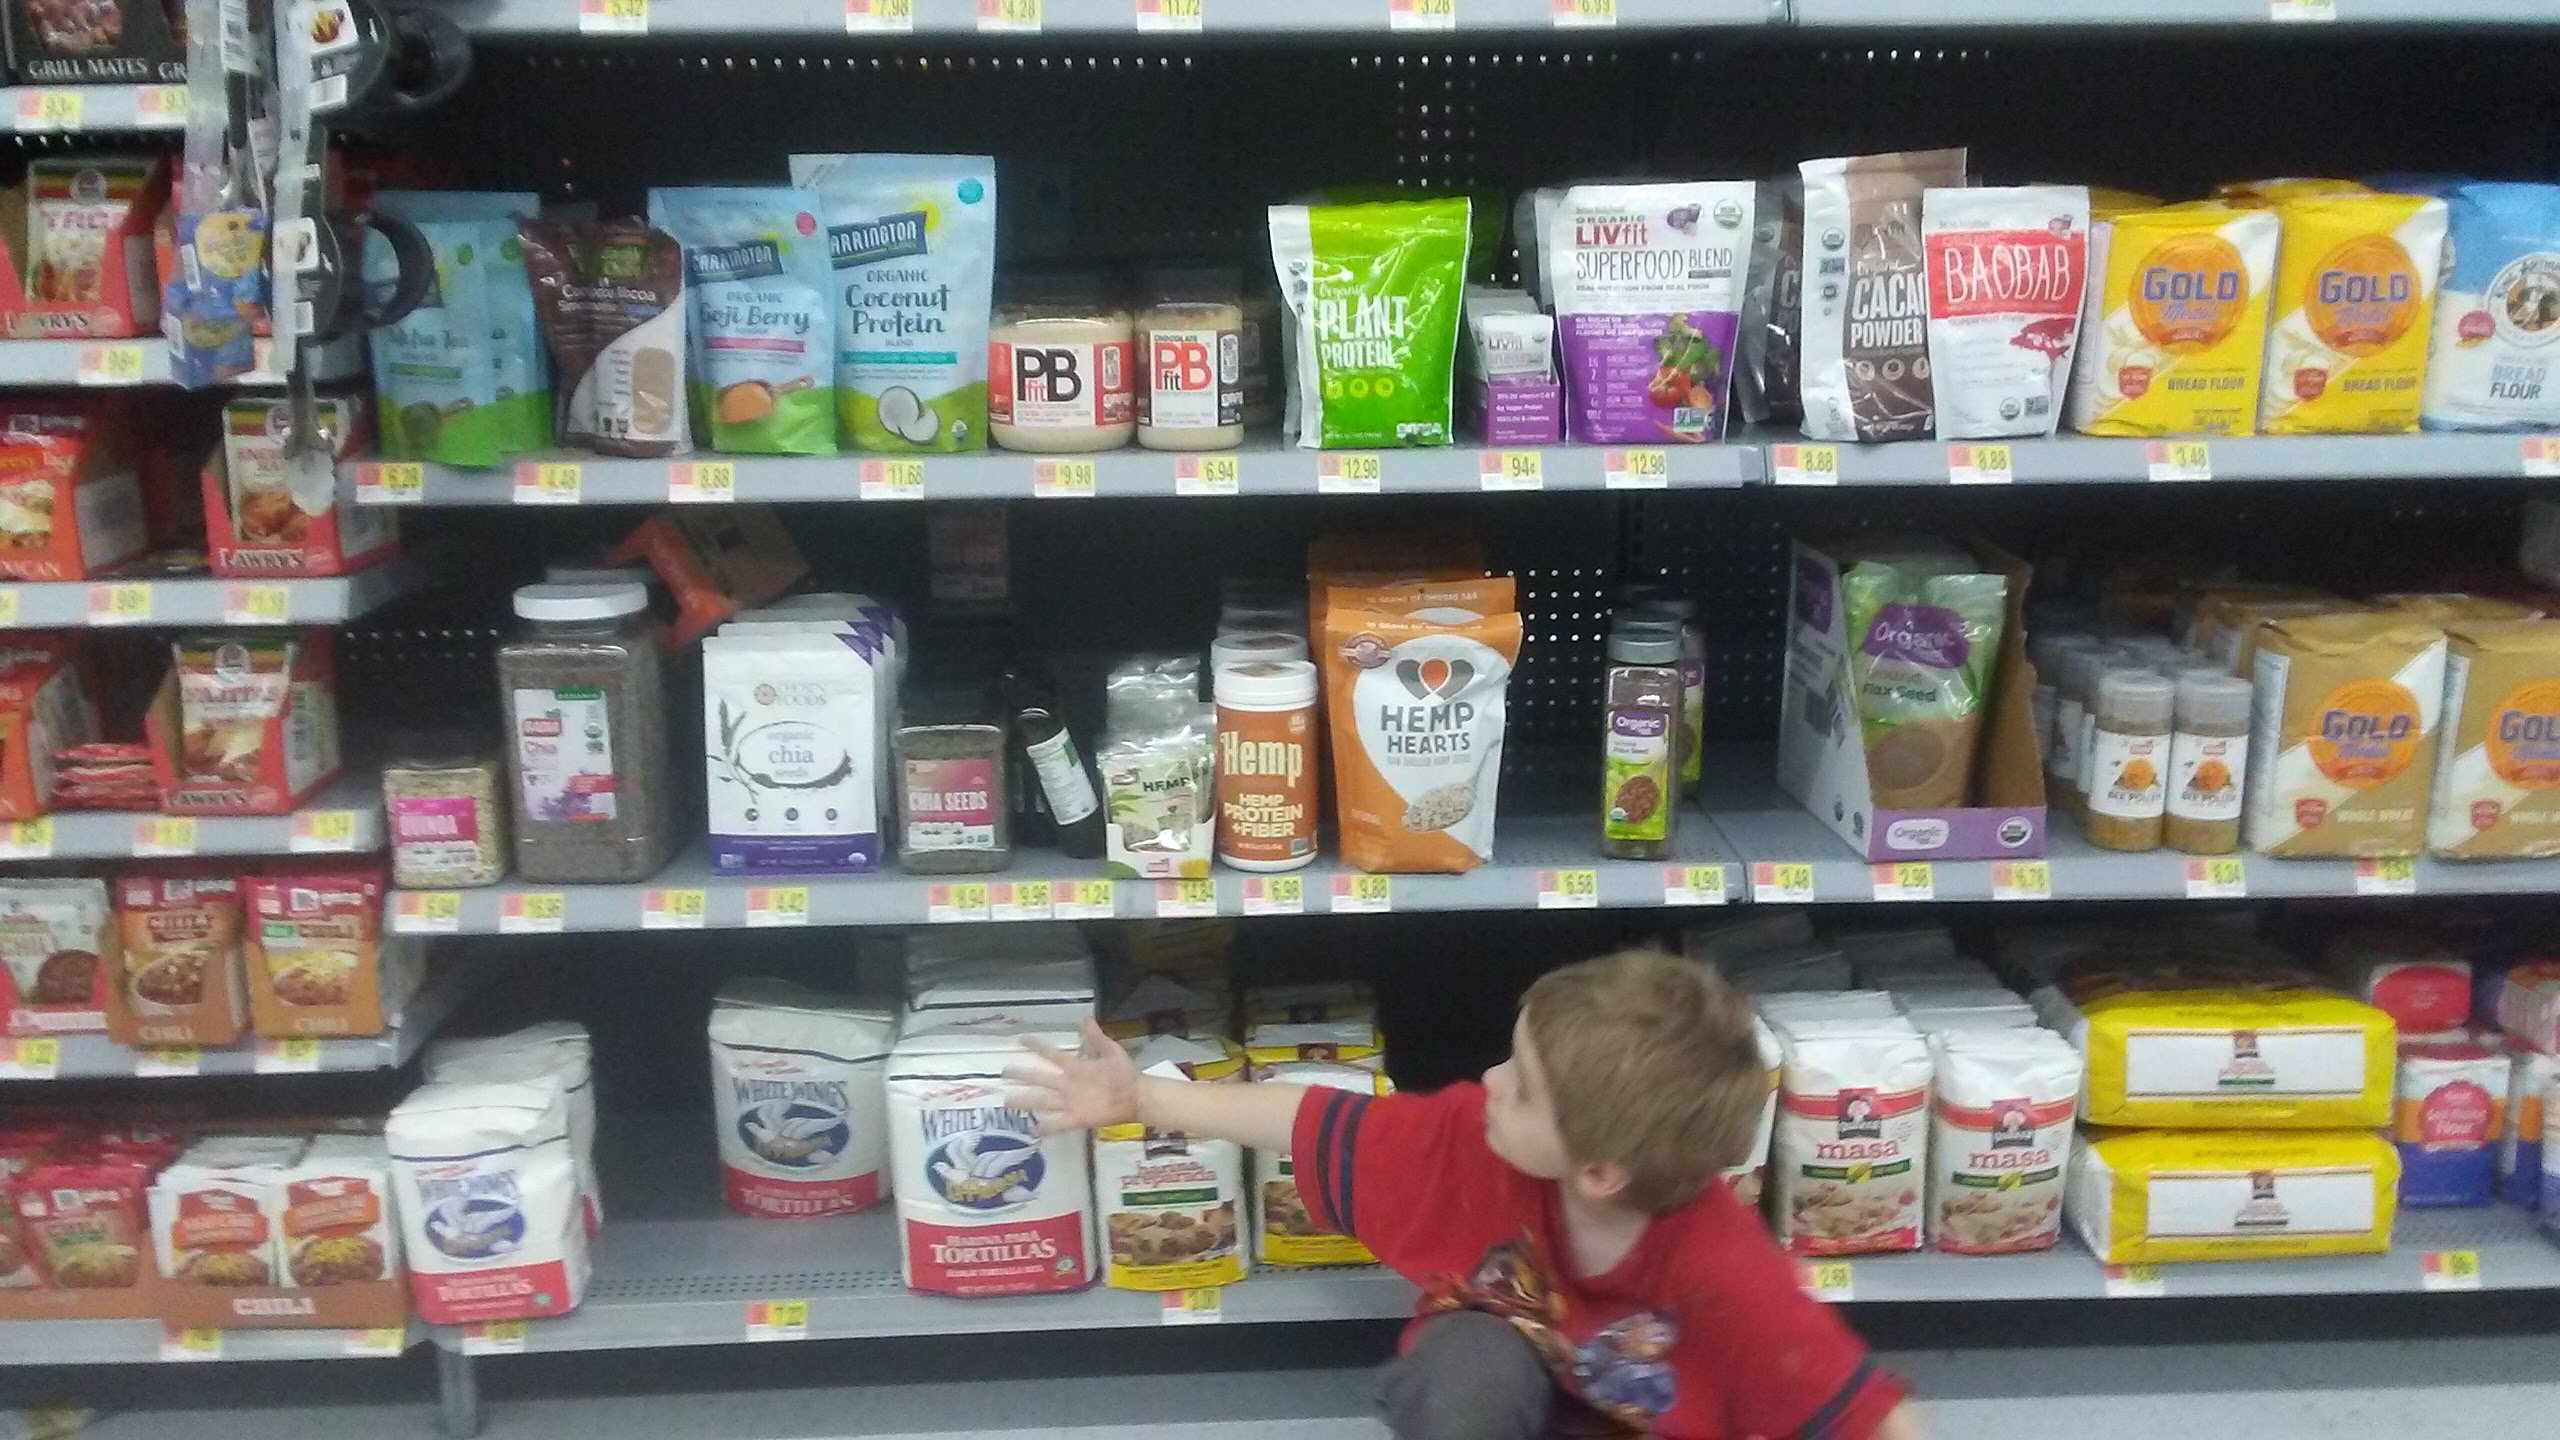 Beckett grocery shopping